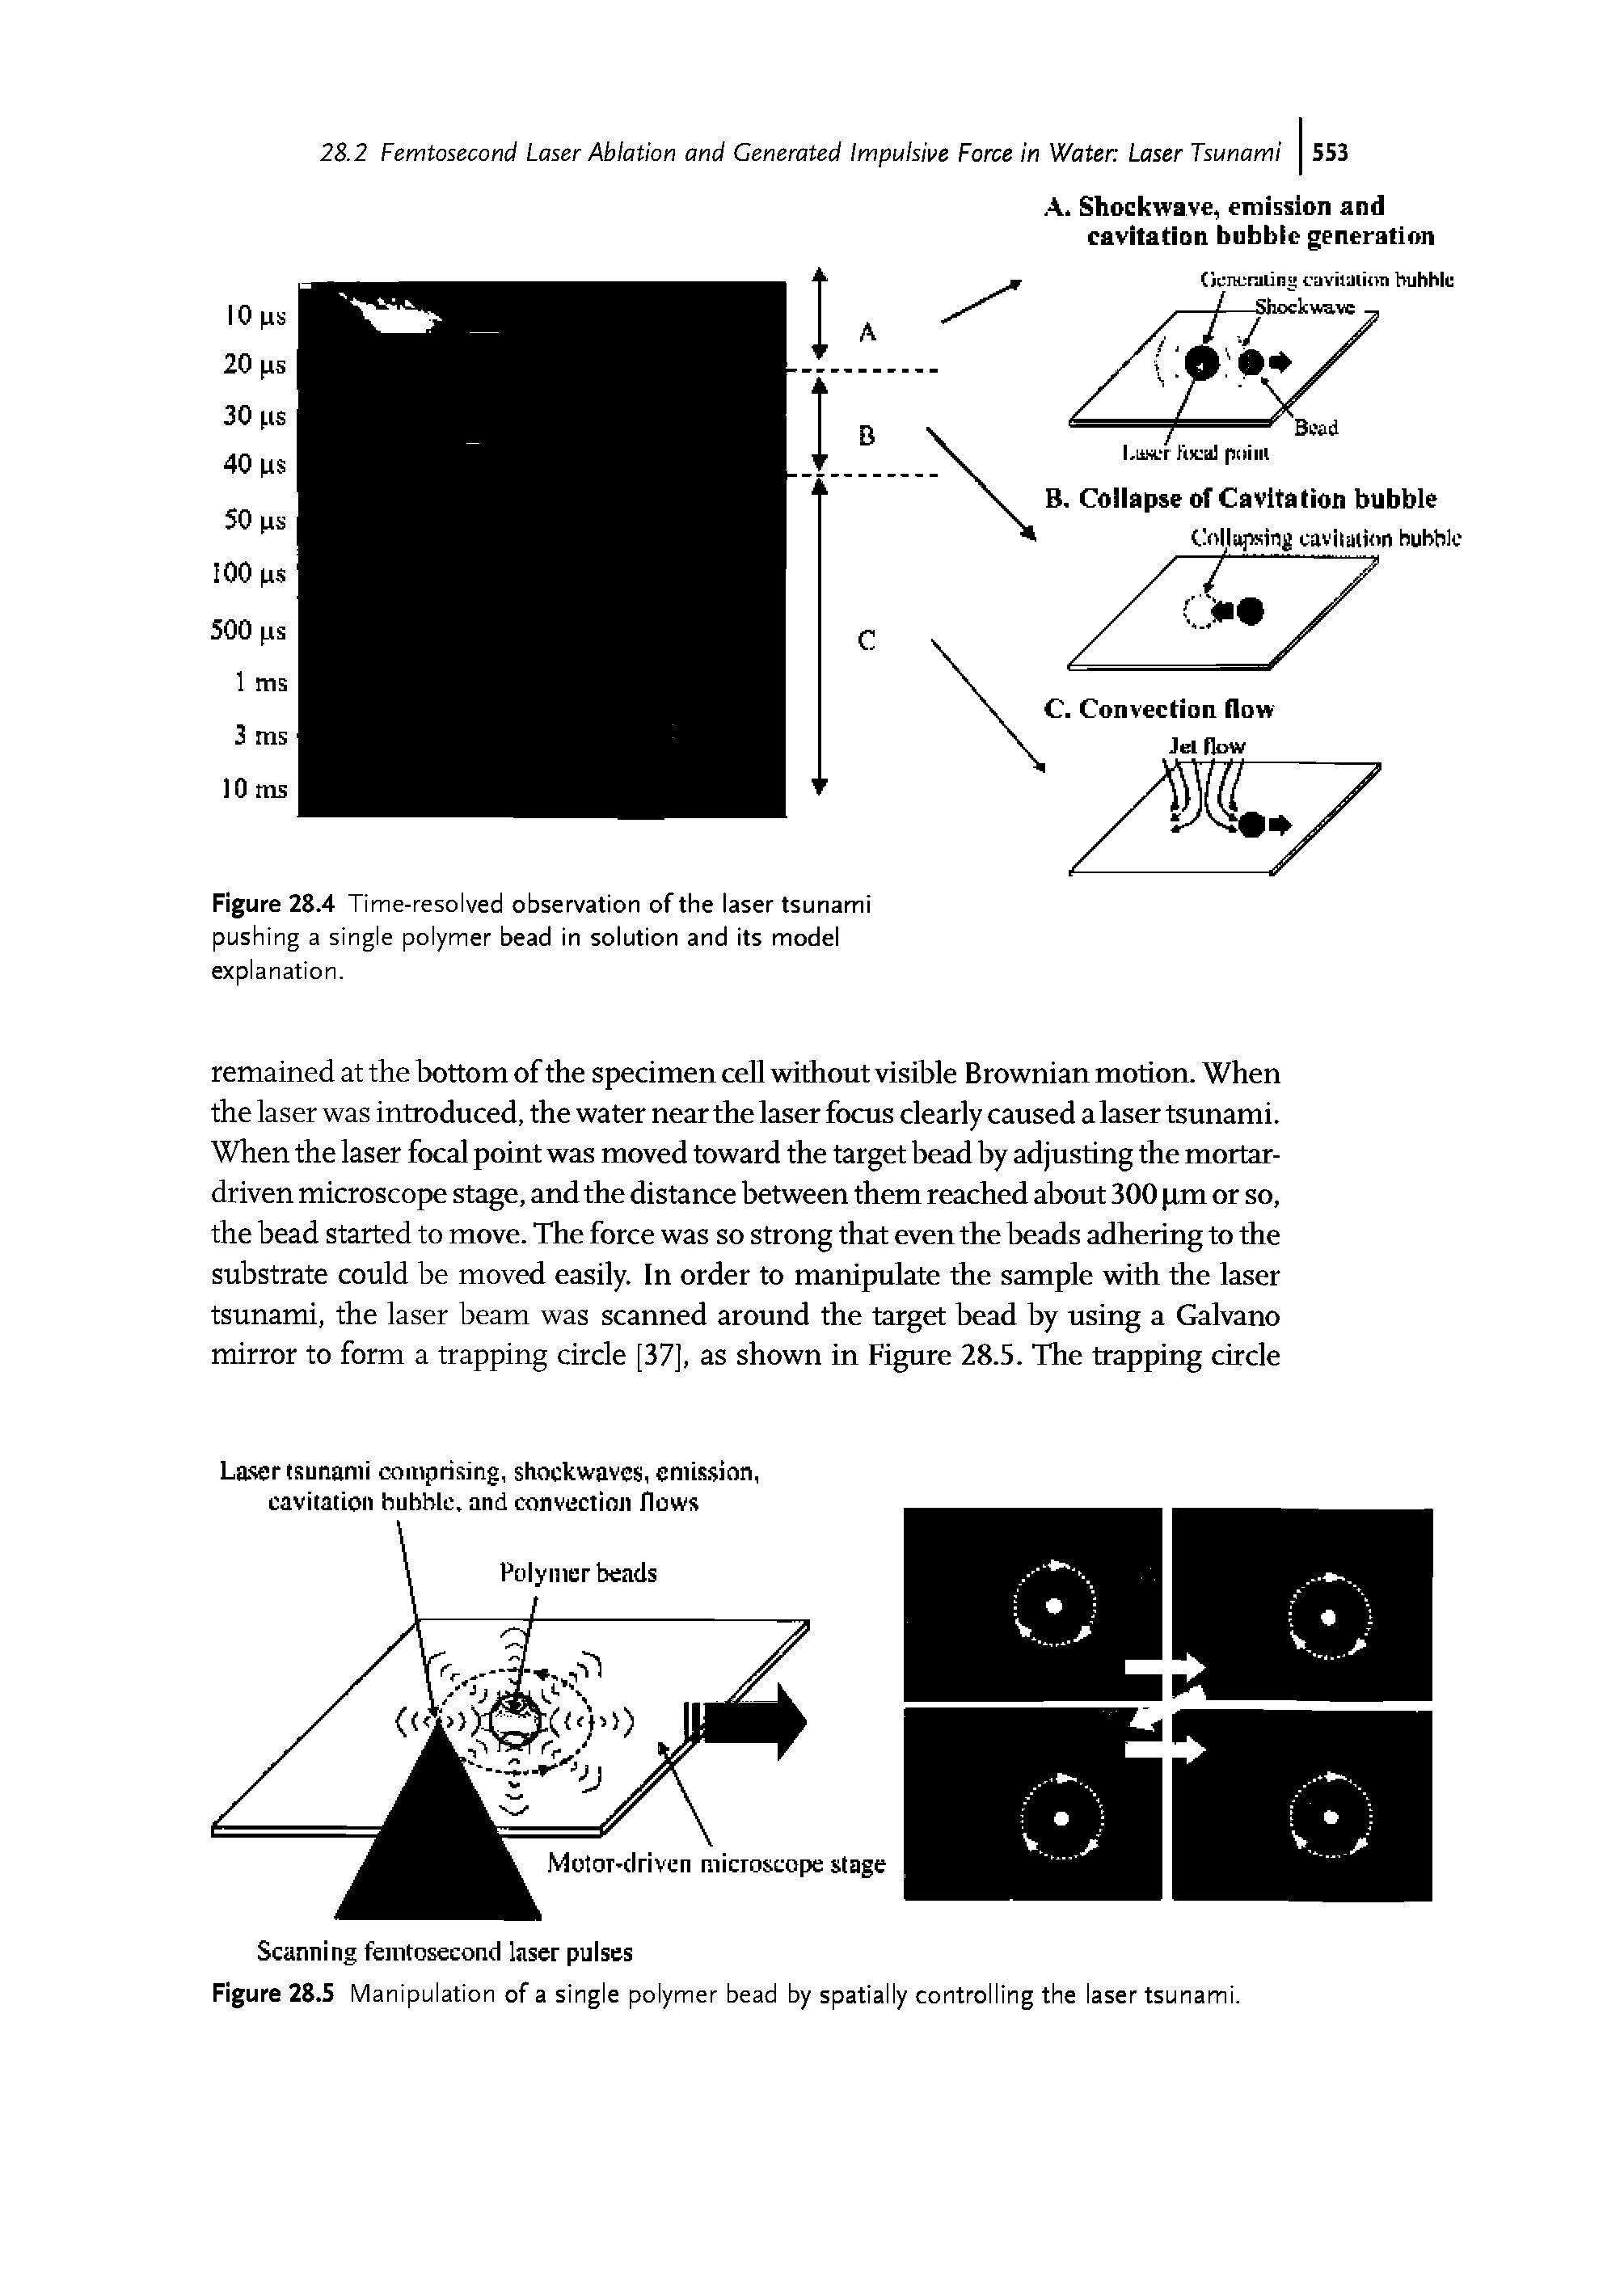 "Figure 28.4 Time-resolved observation of the laser tsunami pushing a <a href=""/info/polymer_single"">single polymer</a> bead in solution and its model explanation."